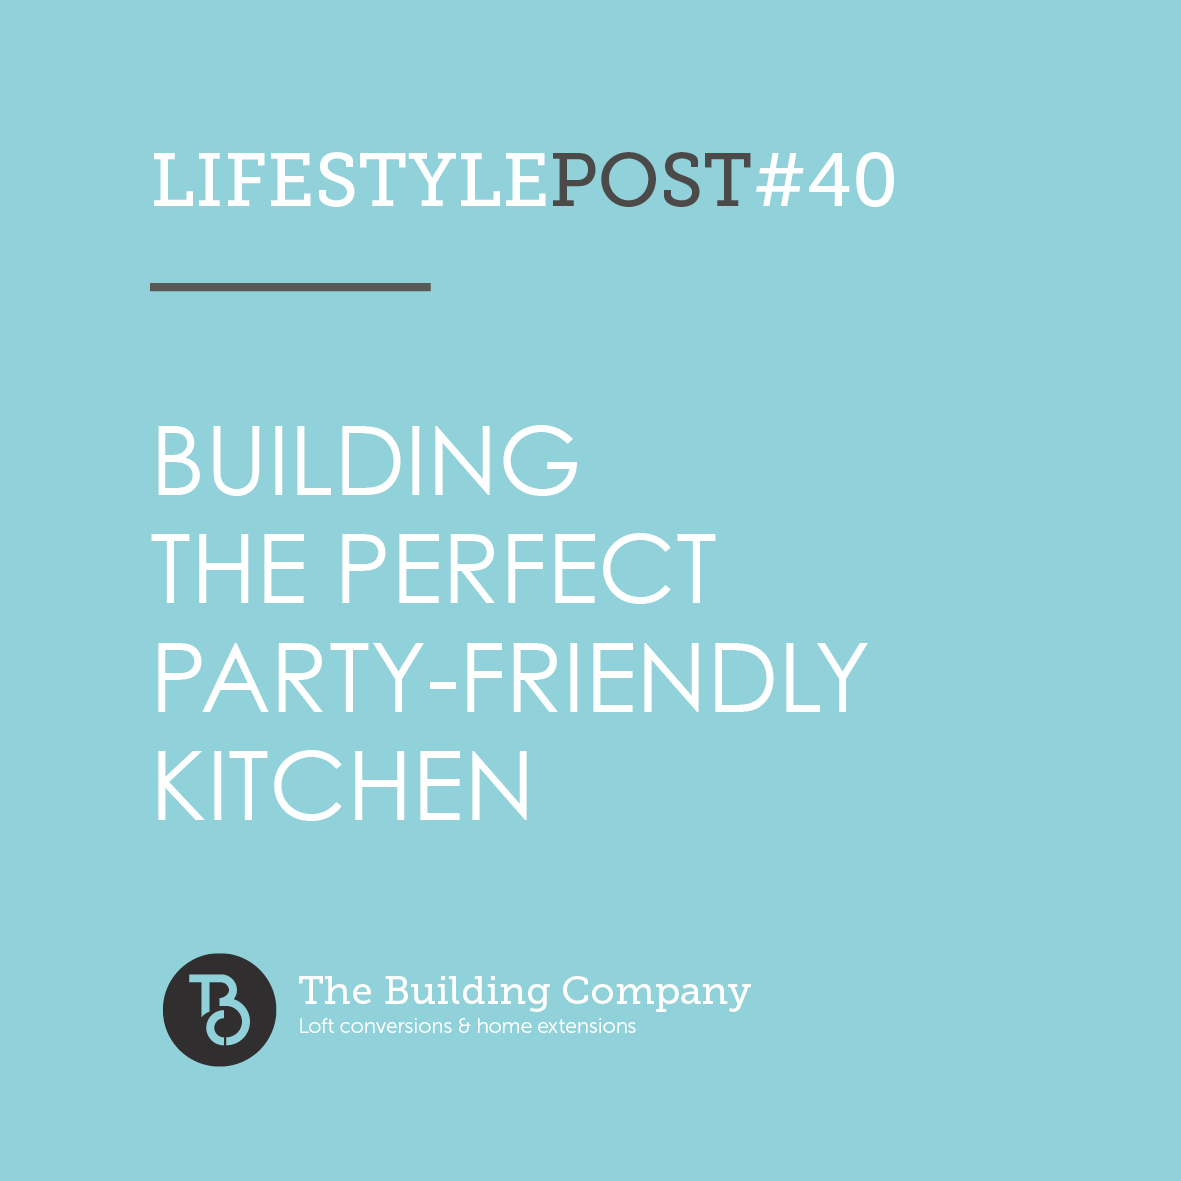 Building the perfect party-friendly kitchen in East Finchley and North London